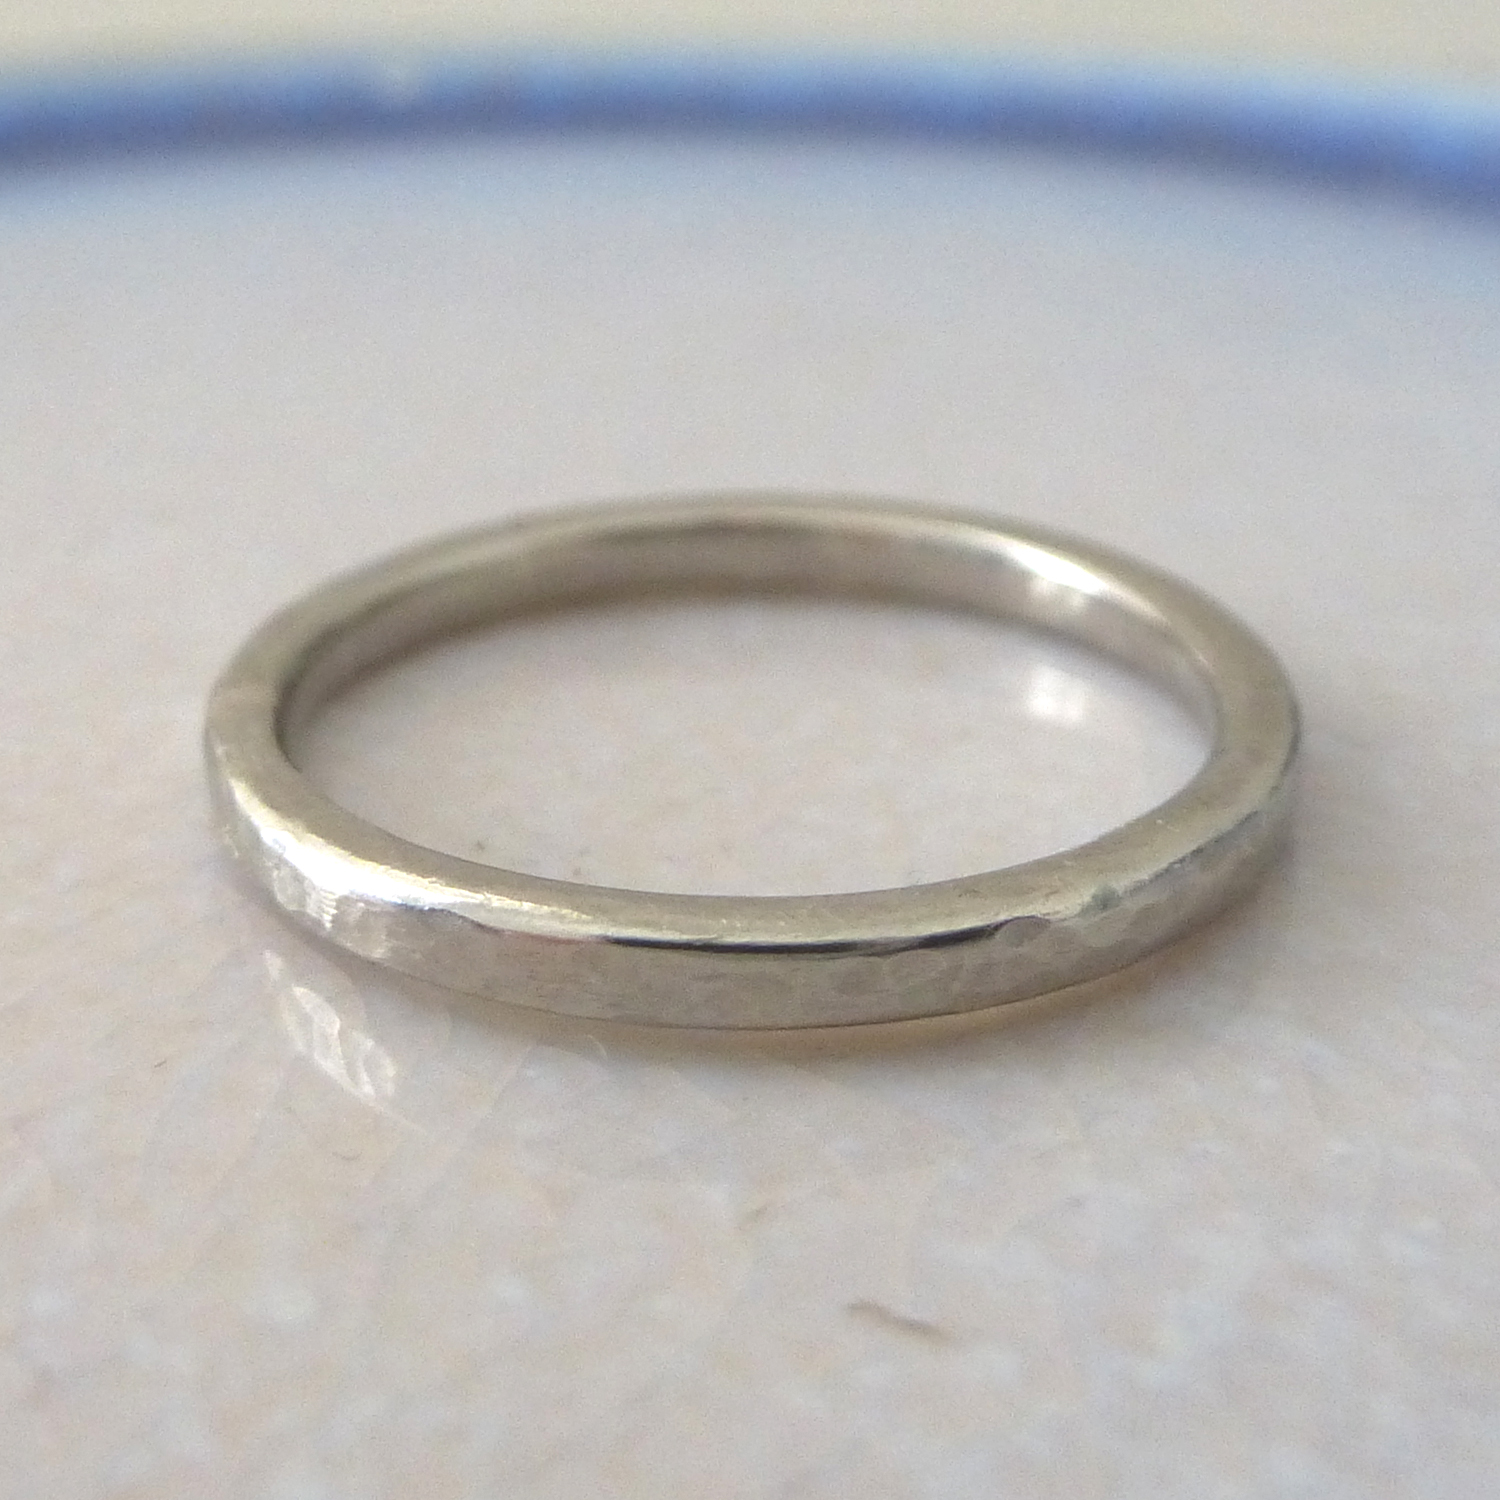 wedding ring, silver wedding ring, nikki stark jewellery